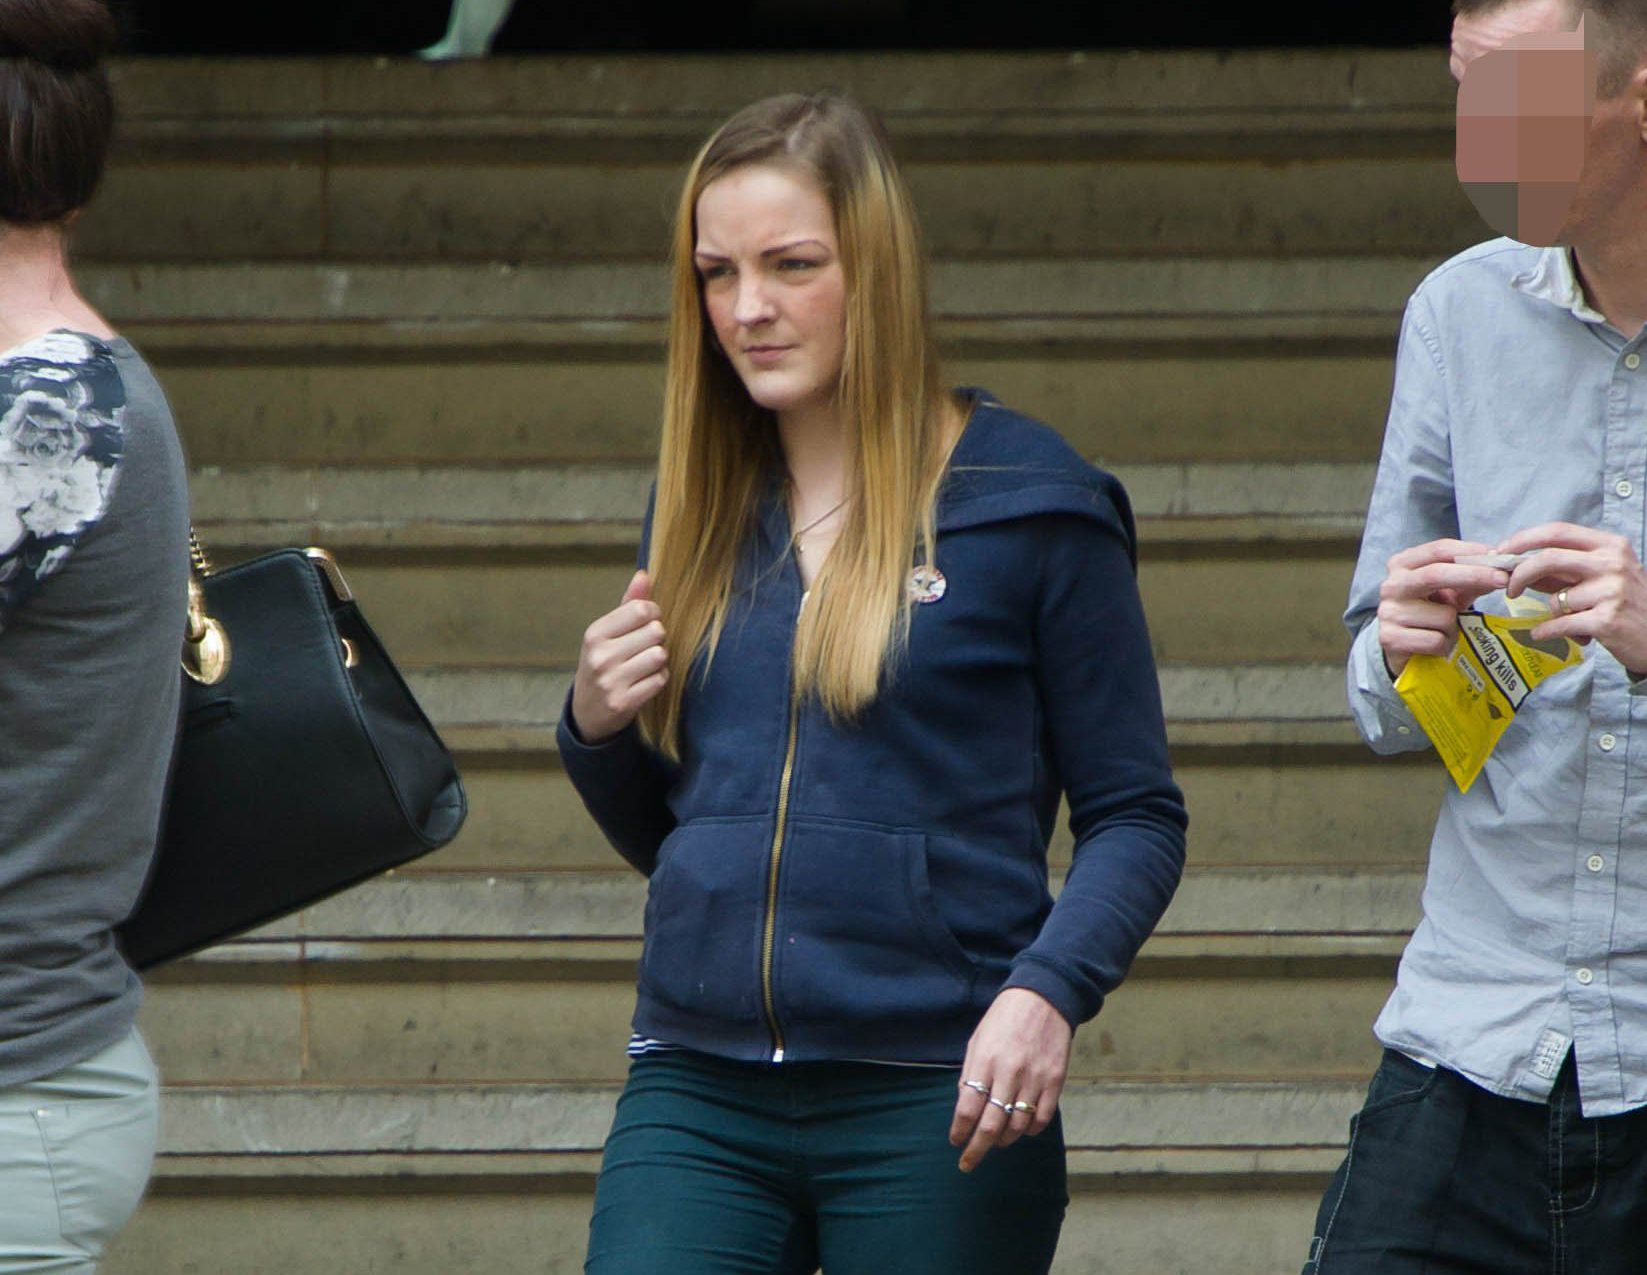 Pictured outside court is Charlotte Jackson who has been hauled back into court after her baby Cassie died of injuries she suffered five years earlier during violent shakings by Jackson. Disclaimer: While Cavendish Press (Manchester) Ltd uses its' best endeavours to establish the copyright and authenticity of all pictures supplied, it accepts no liability for any damage, loss or legal action caused by the use of images supplied. The publication of images is solely at your discretion. For terms and conditions see http://www.cavendish-press.co.uk/pages/terms-and-conditions.aspx